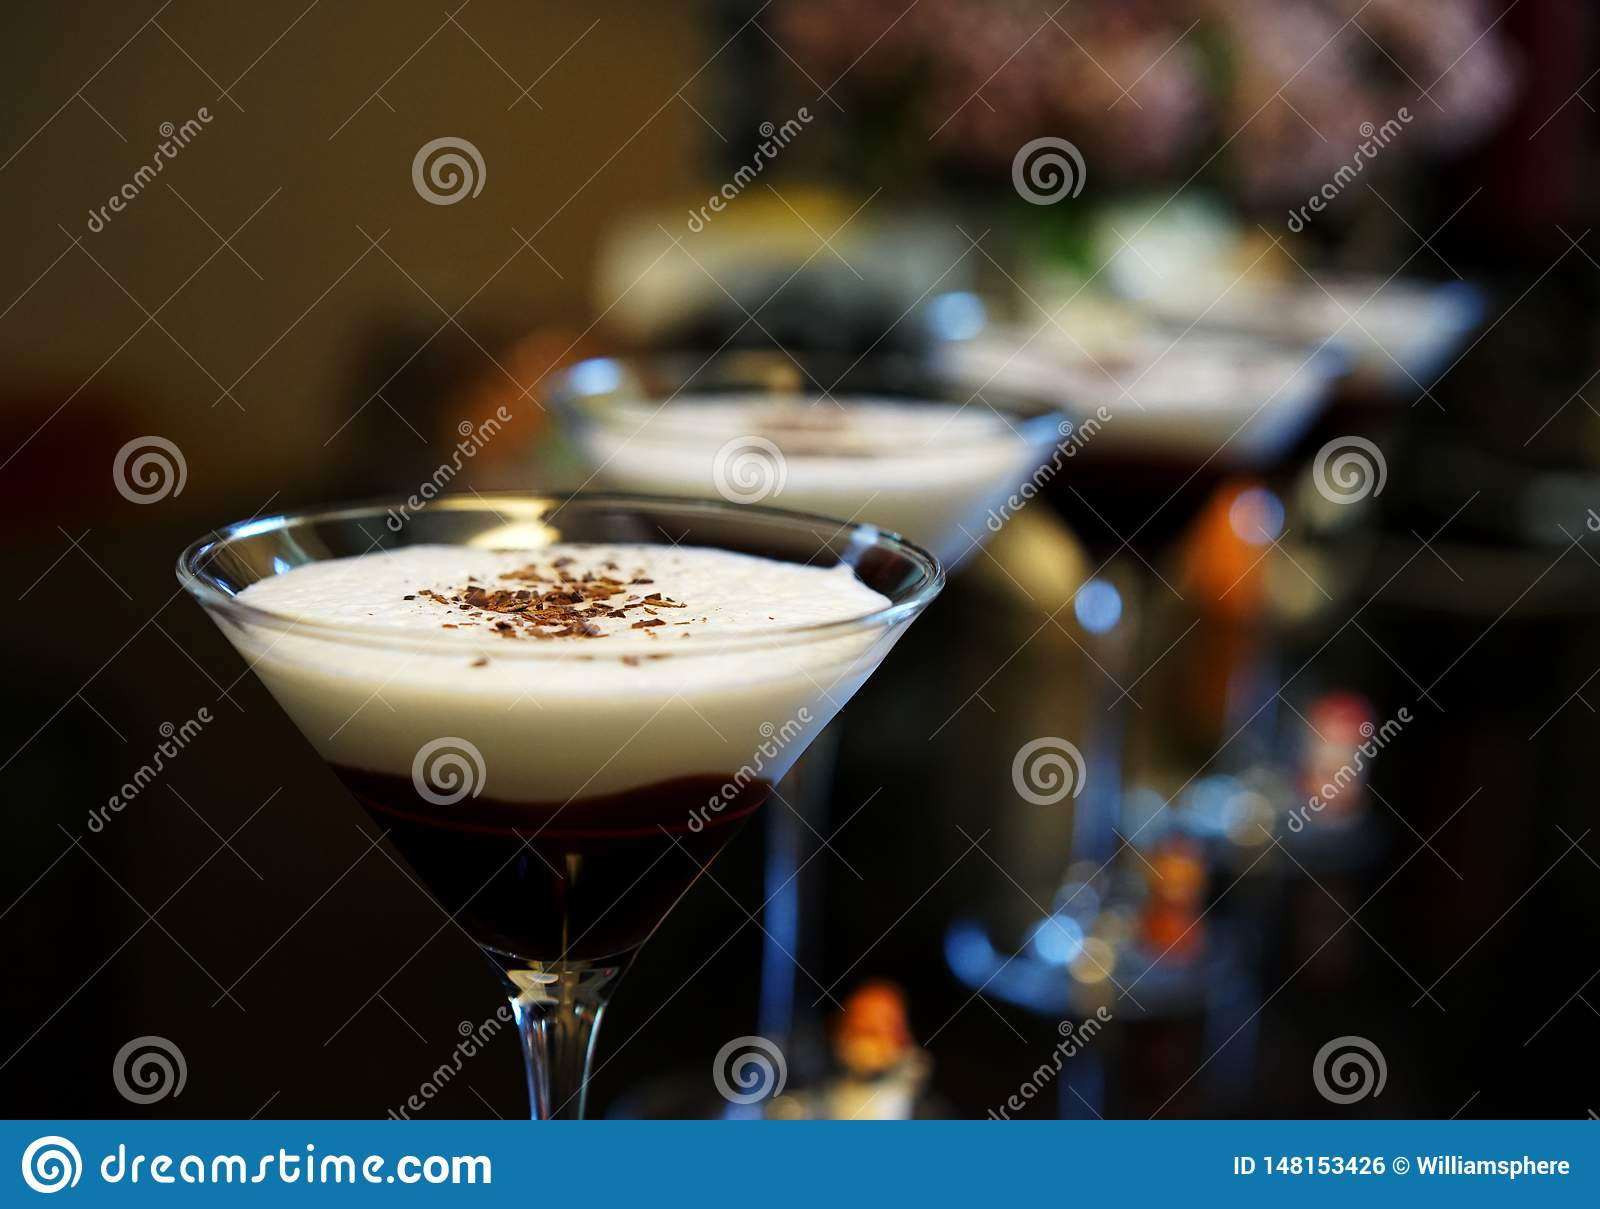 Chocolate martinis are the height of divine